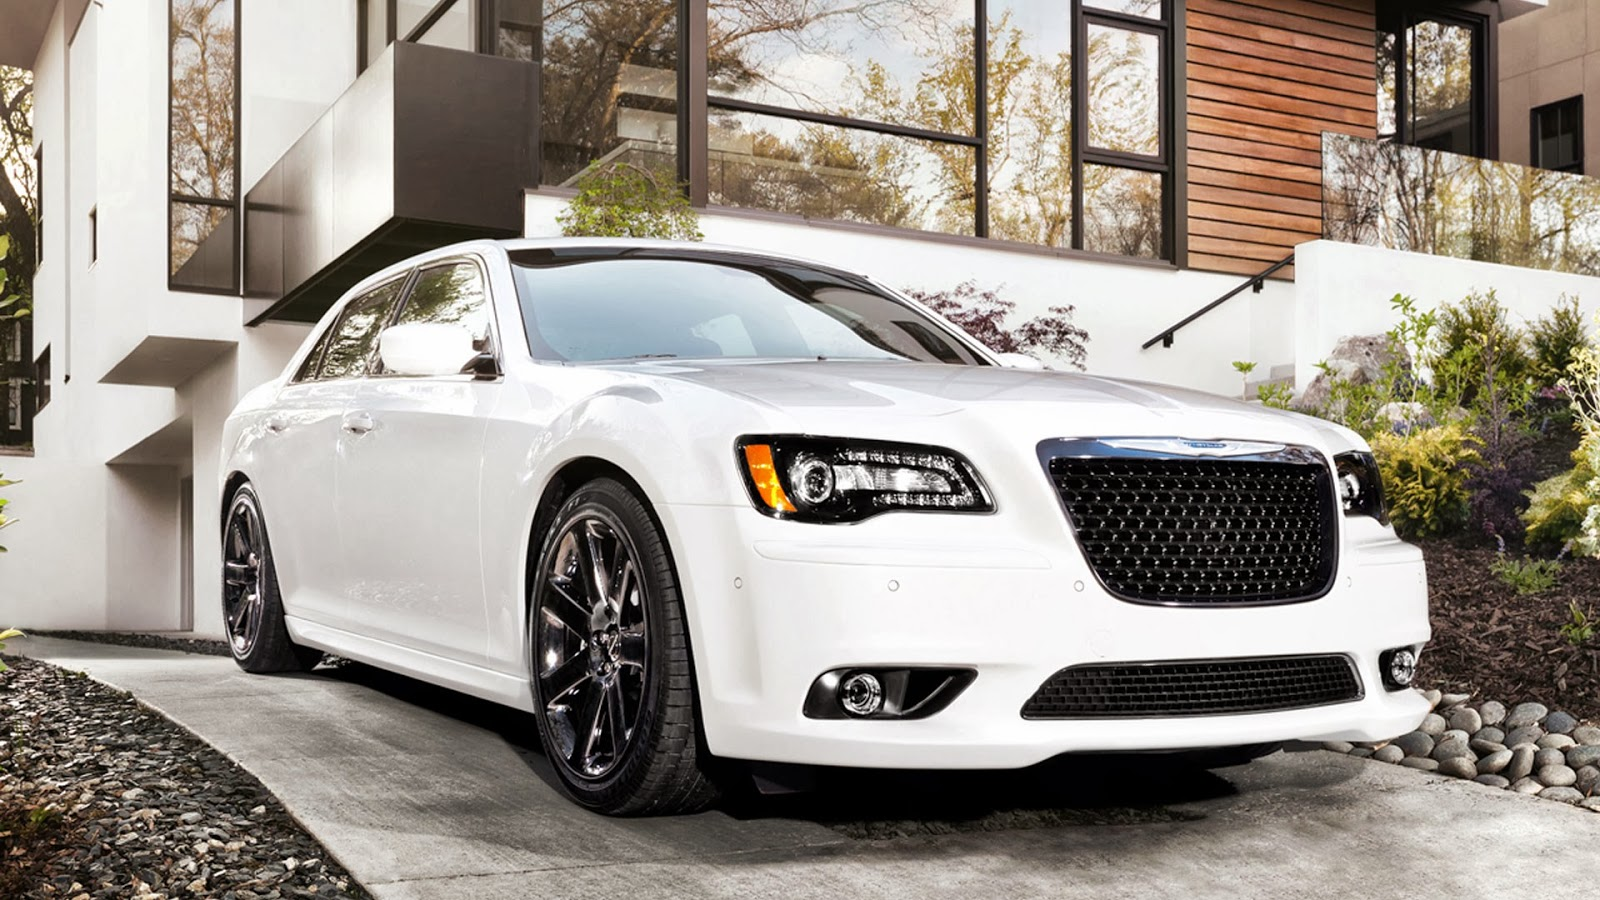 chrysler 300 srt8 core prices photos just welcome to automotive. Black Bedroom Furniture Sets. Home Design Ideas